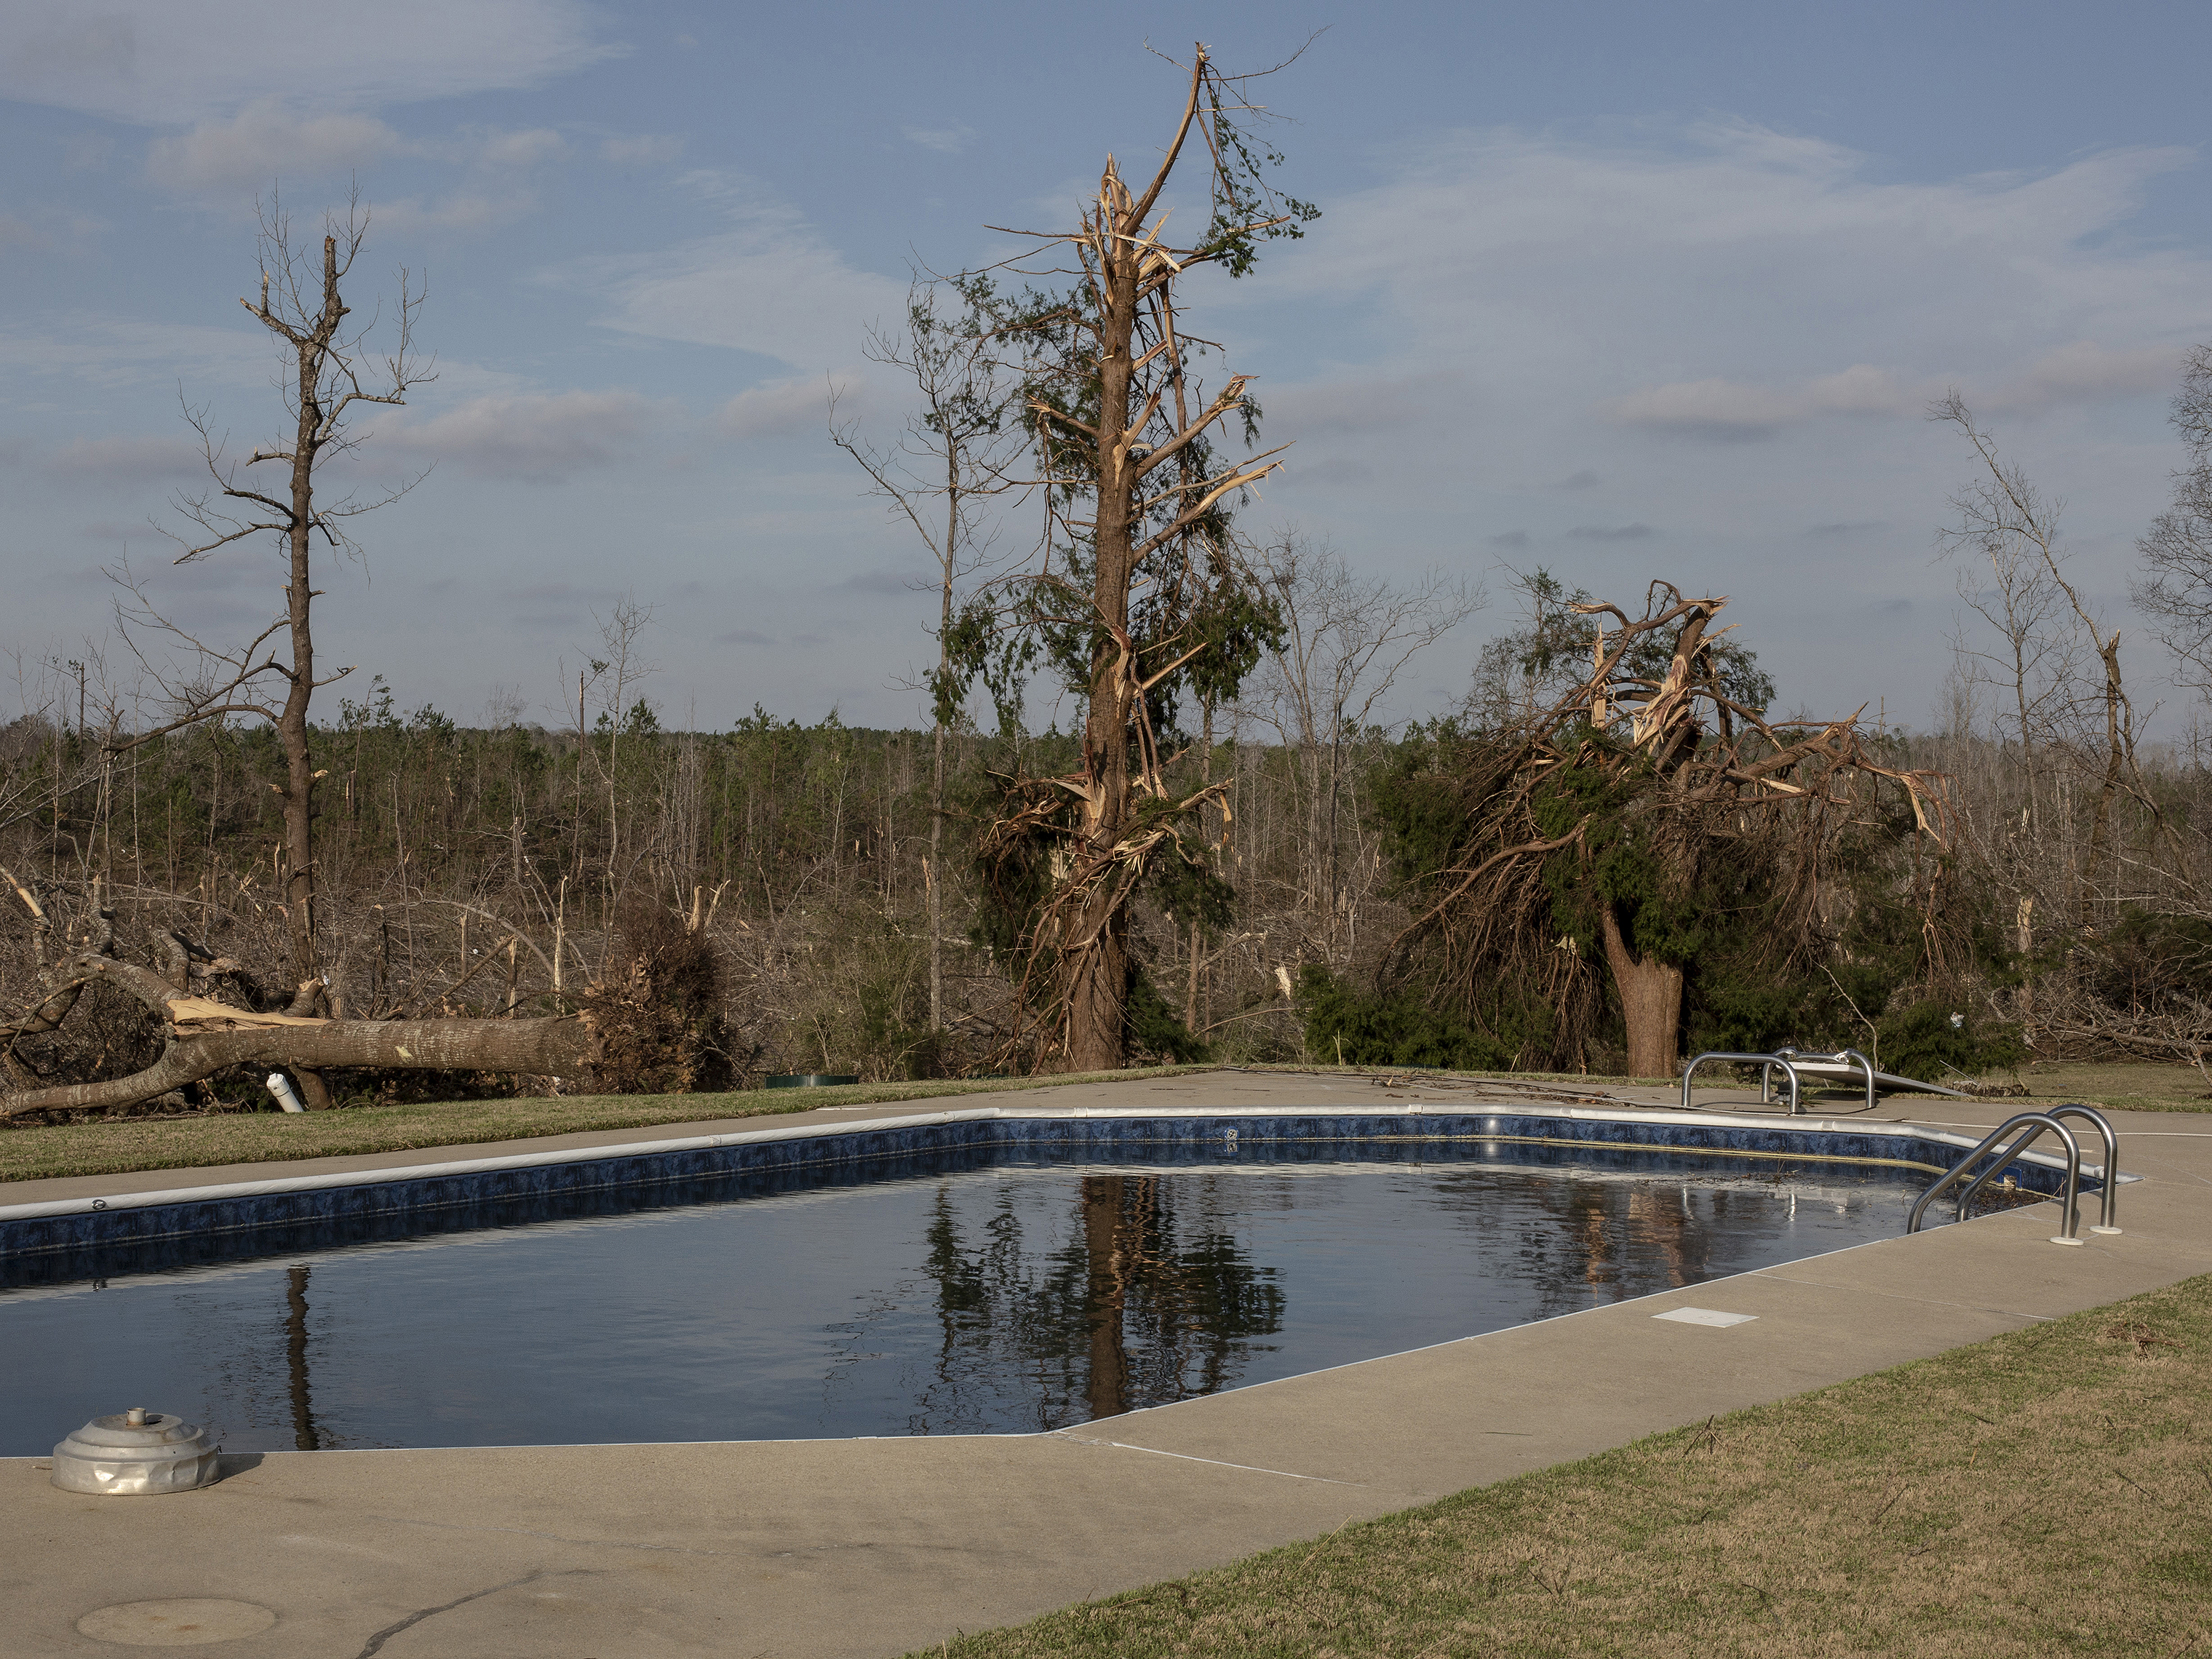 A swimming pool after a tornado passed over killing several people and destroying homes in Beauregard, Alabama, on March 4, 2019.